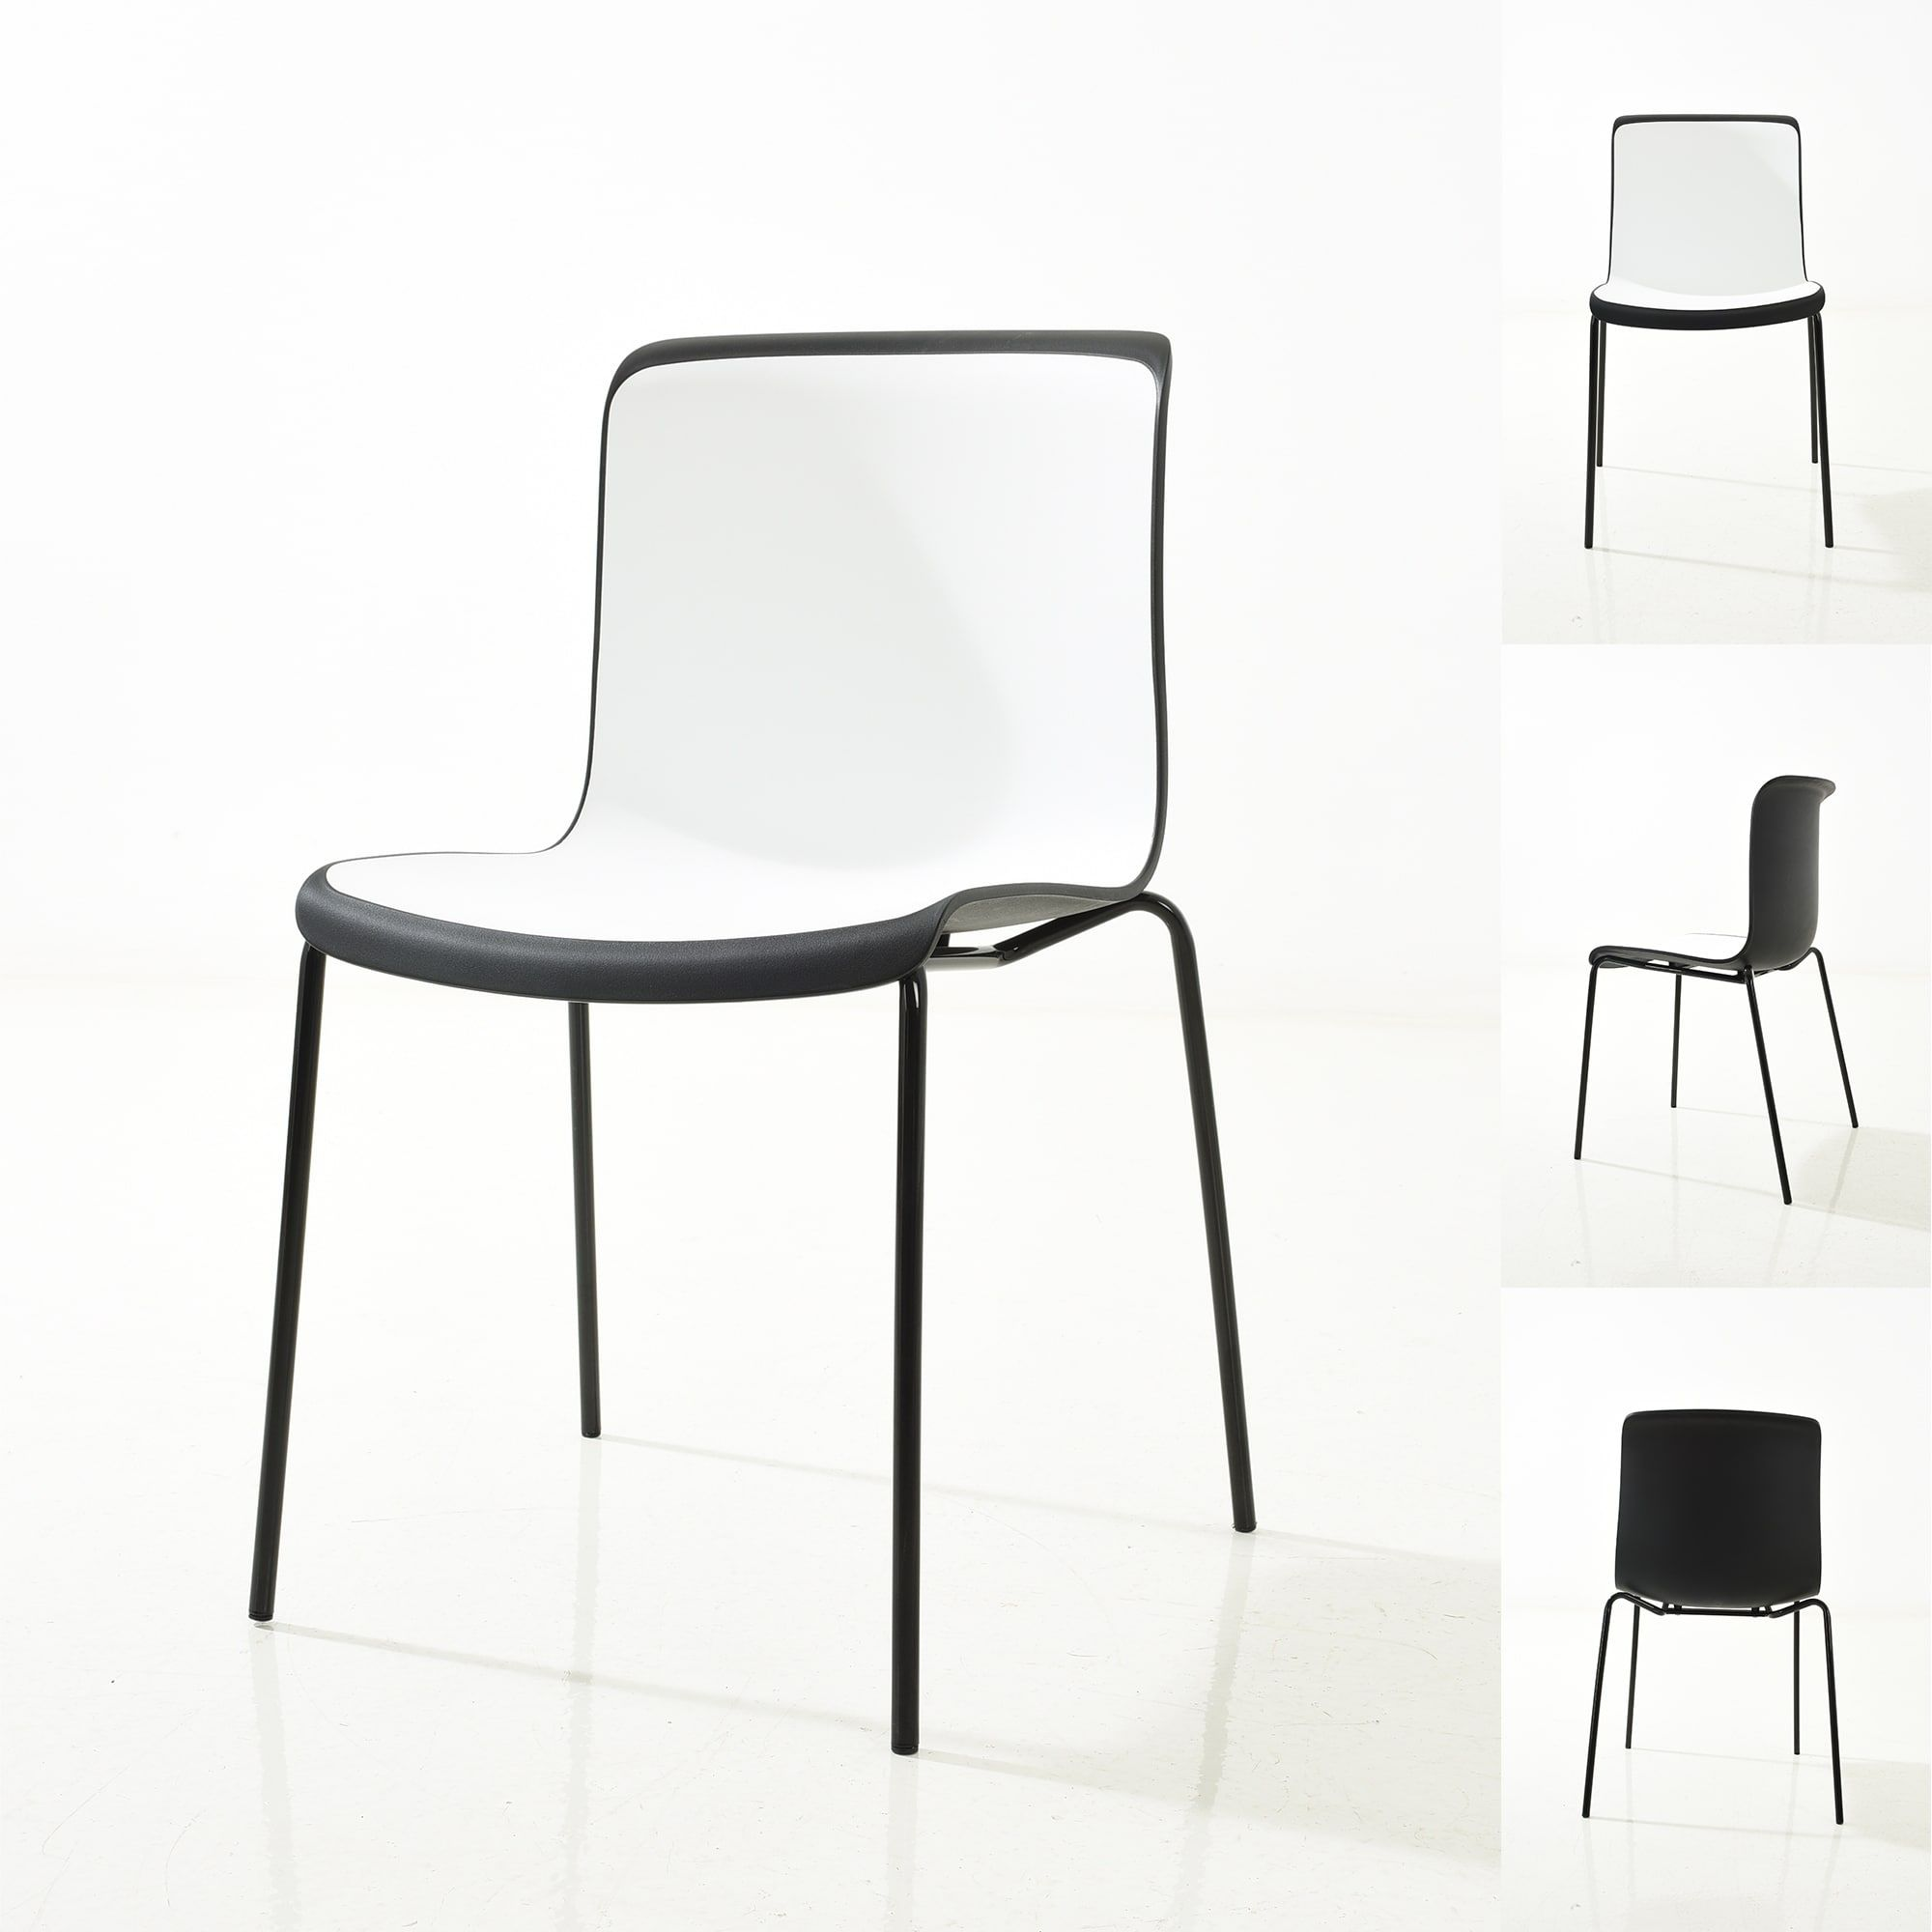 Admirable Petite Enrik Modern Two Toned Polypropylene Dining Chair Caraccident5 Cool Chair Designs And Ideas Caraccident5Info